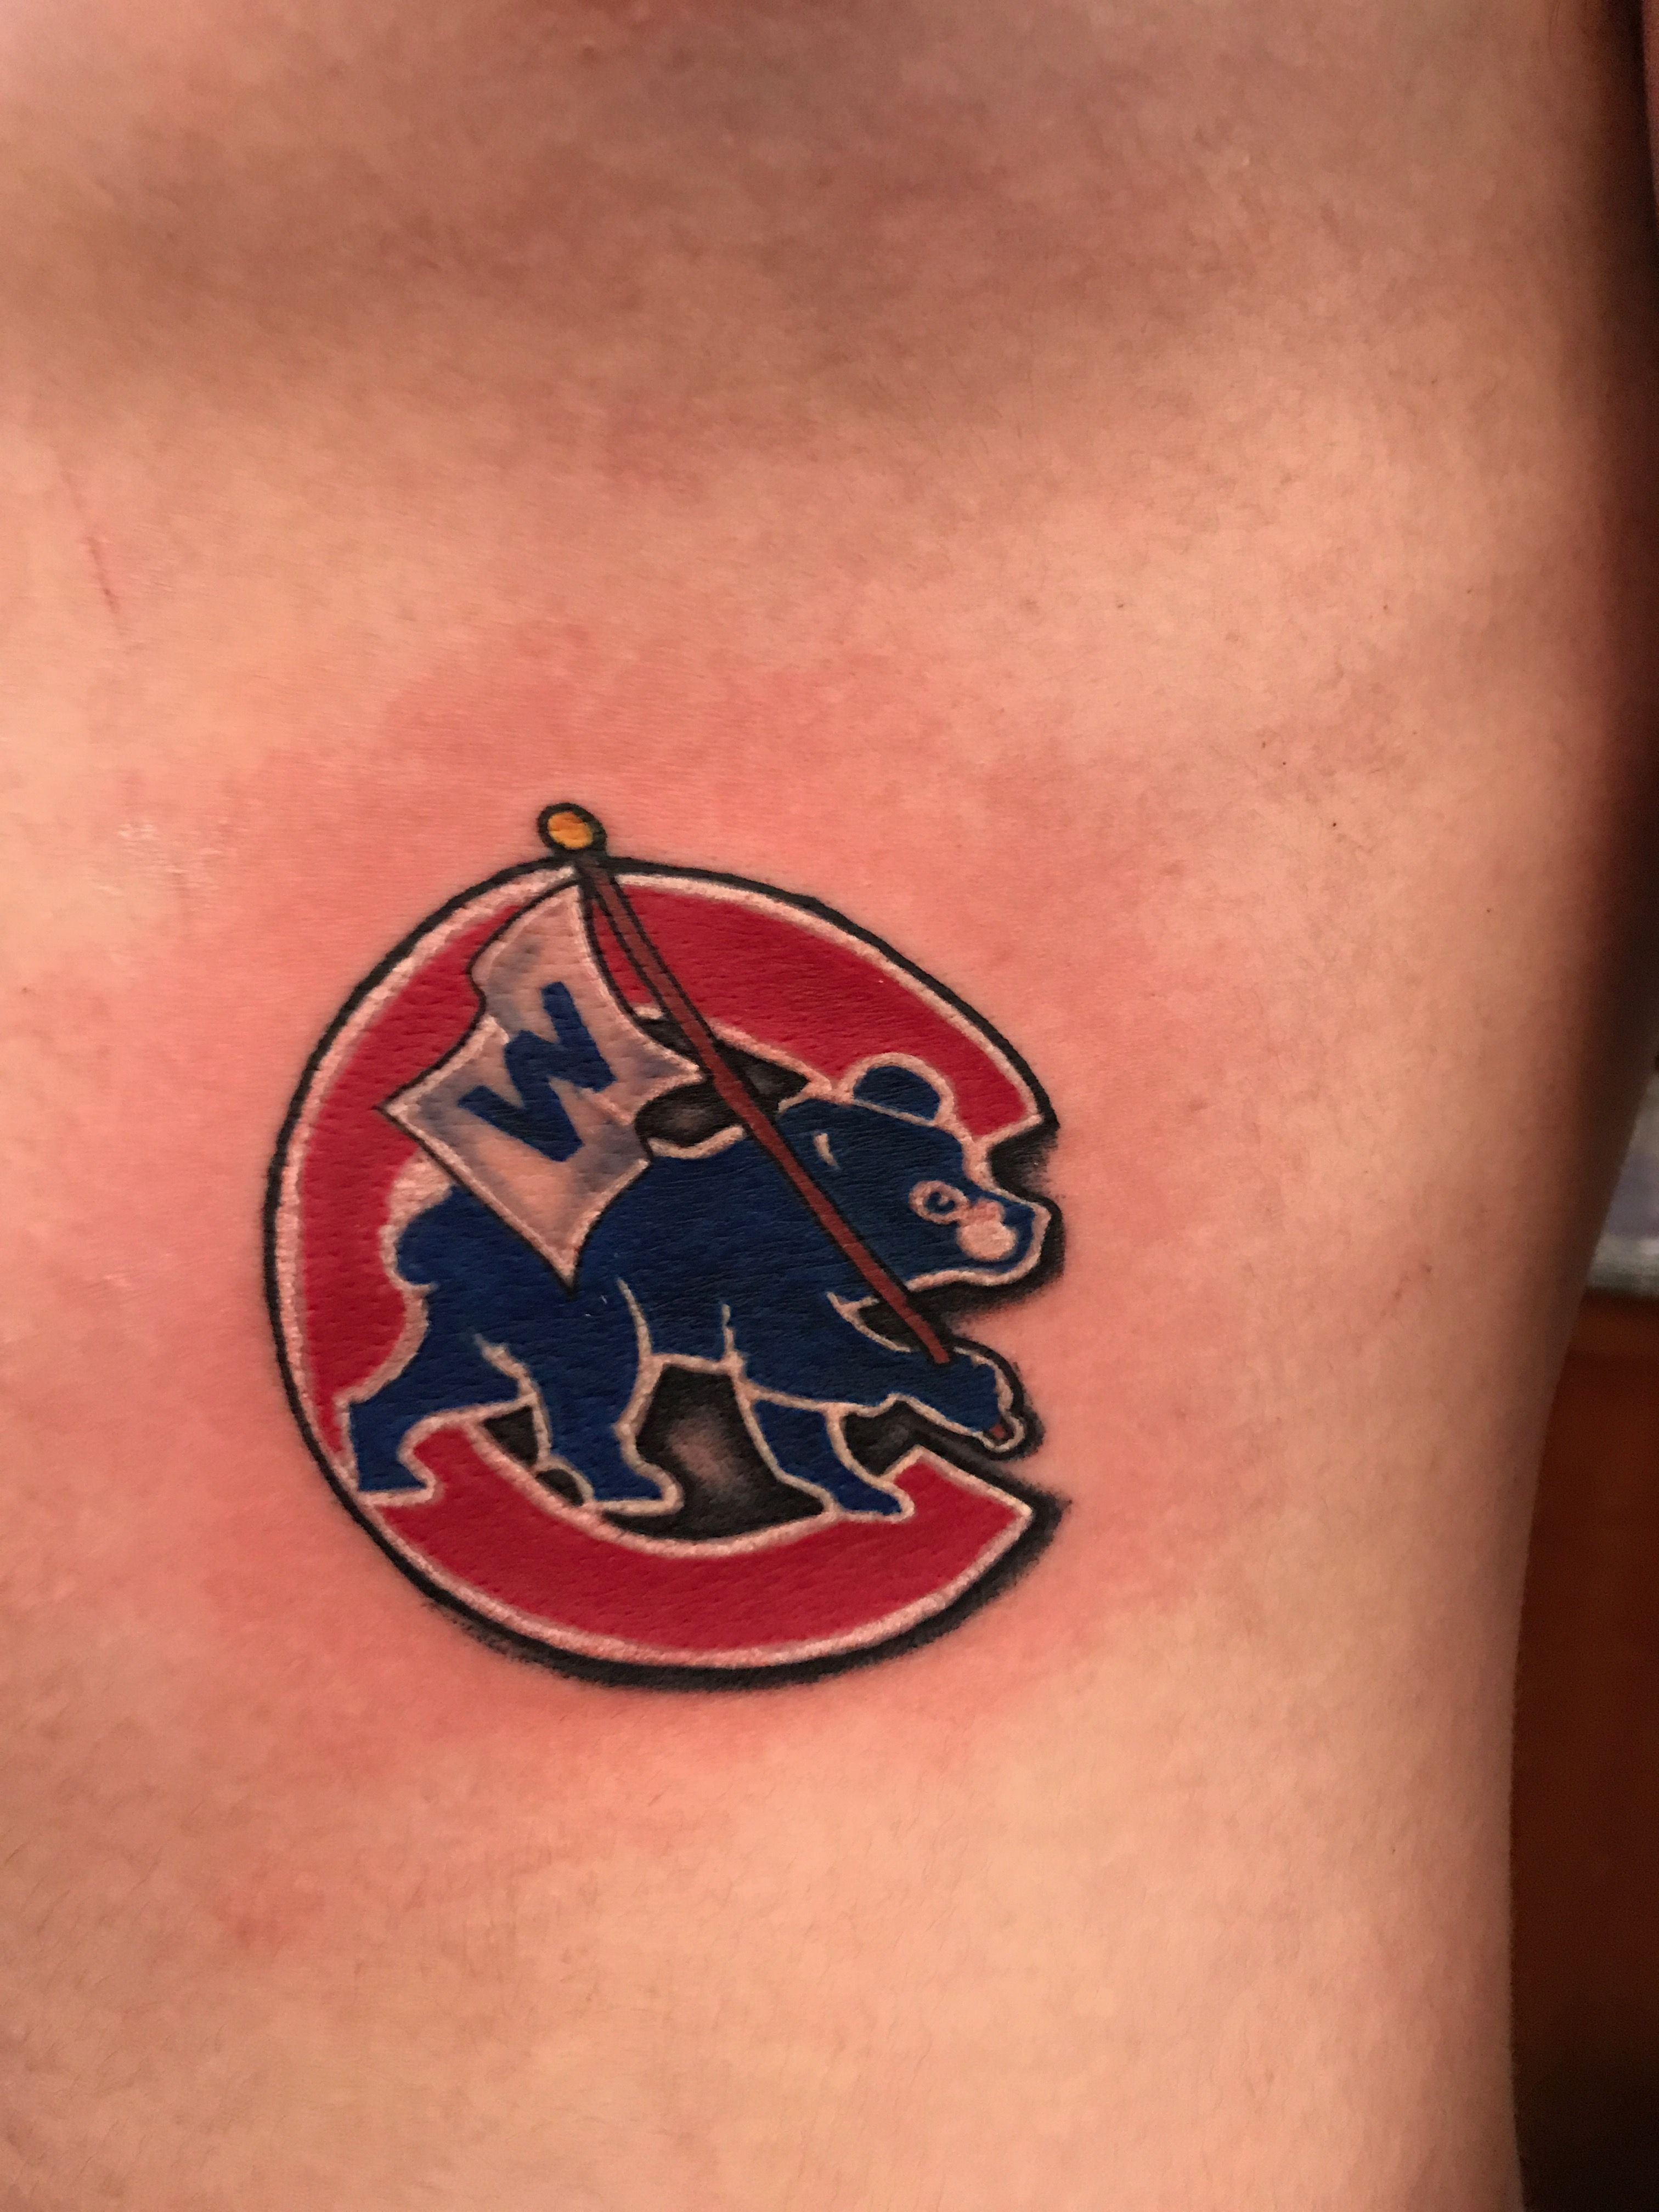 Go cubs gofly the w chicago cubs logo tattoo chicago go cubs gofly the w chicago cubs logo tattoo biocorpaavc Gallery